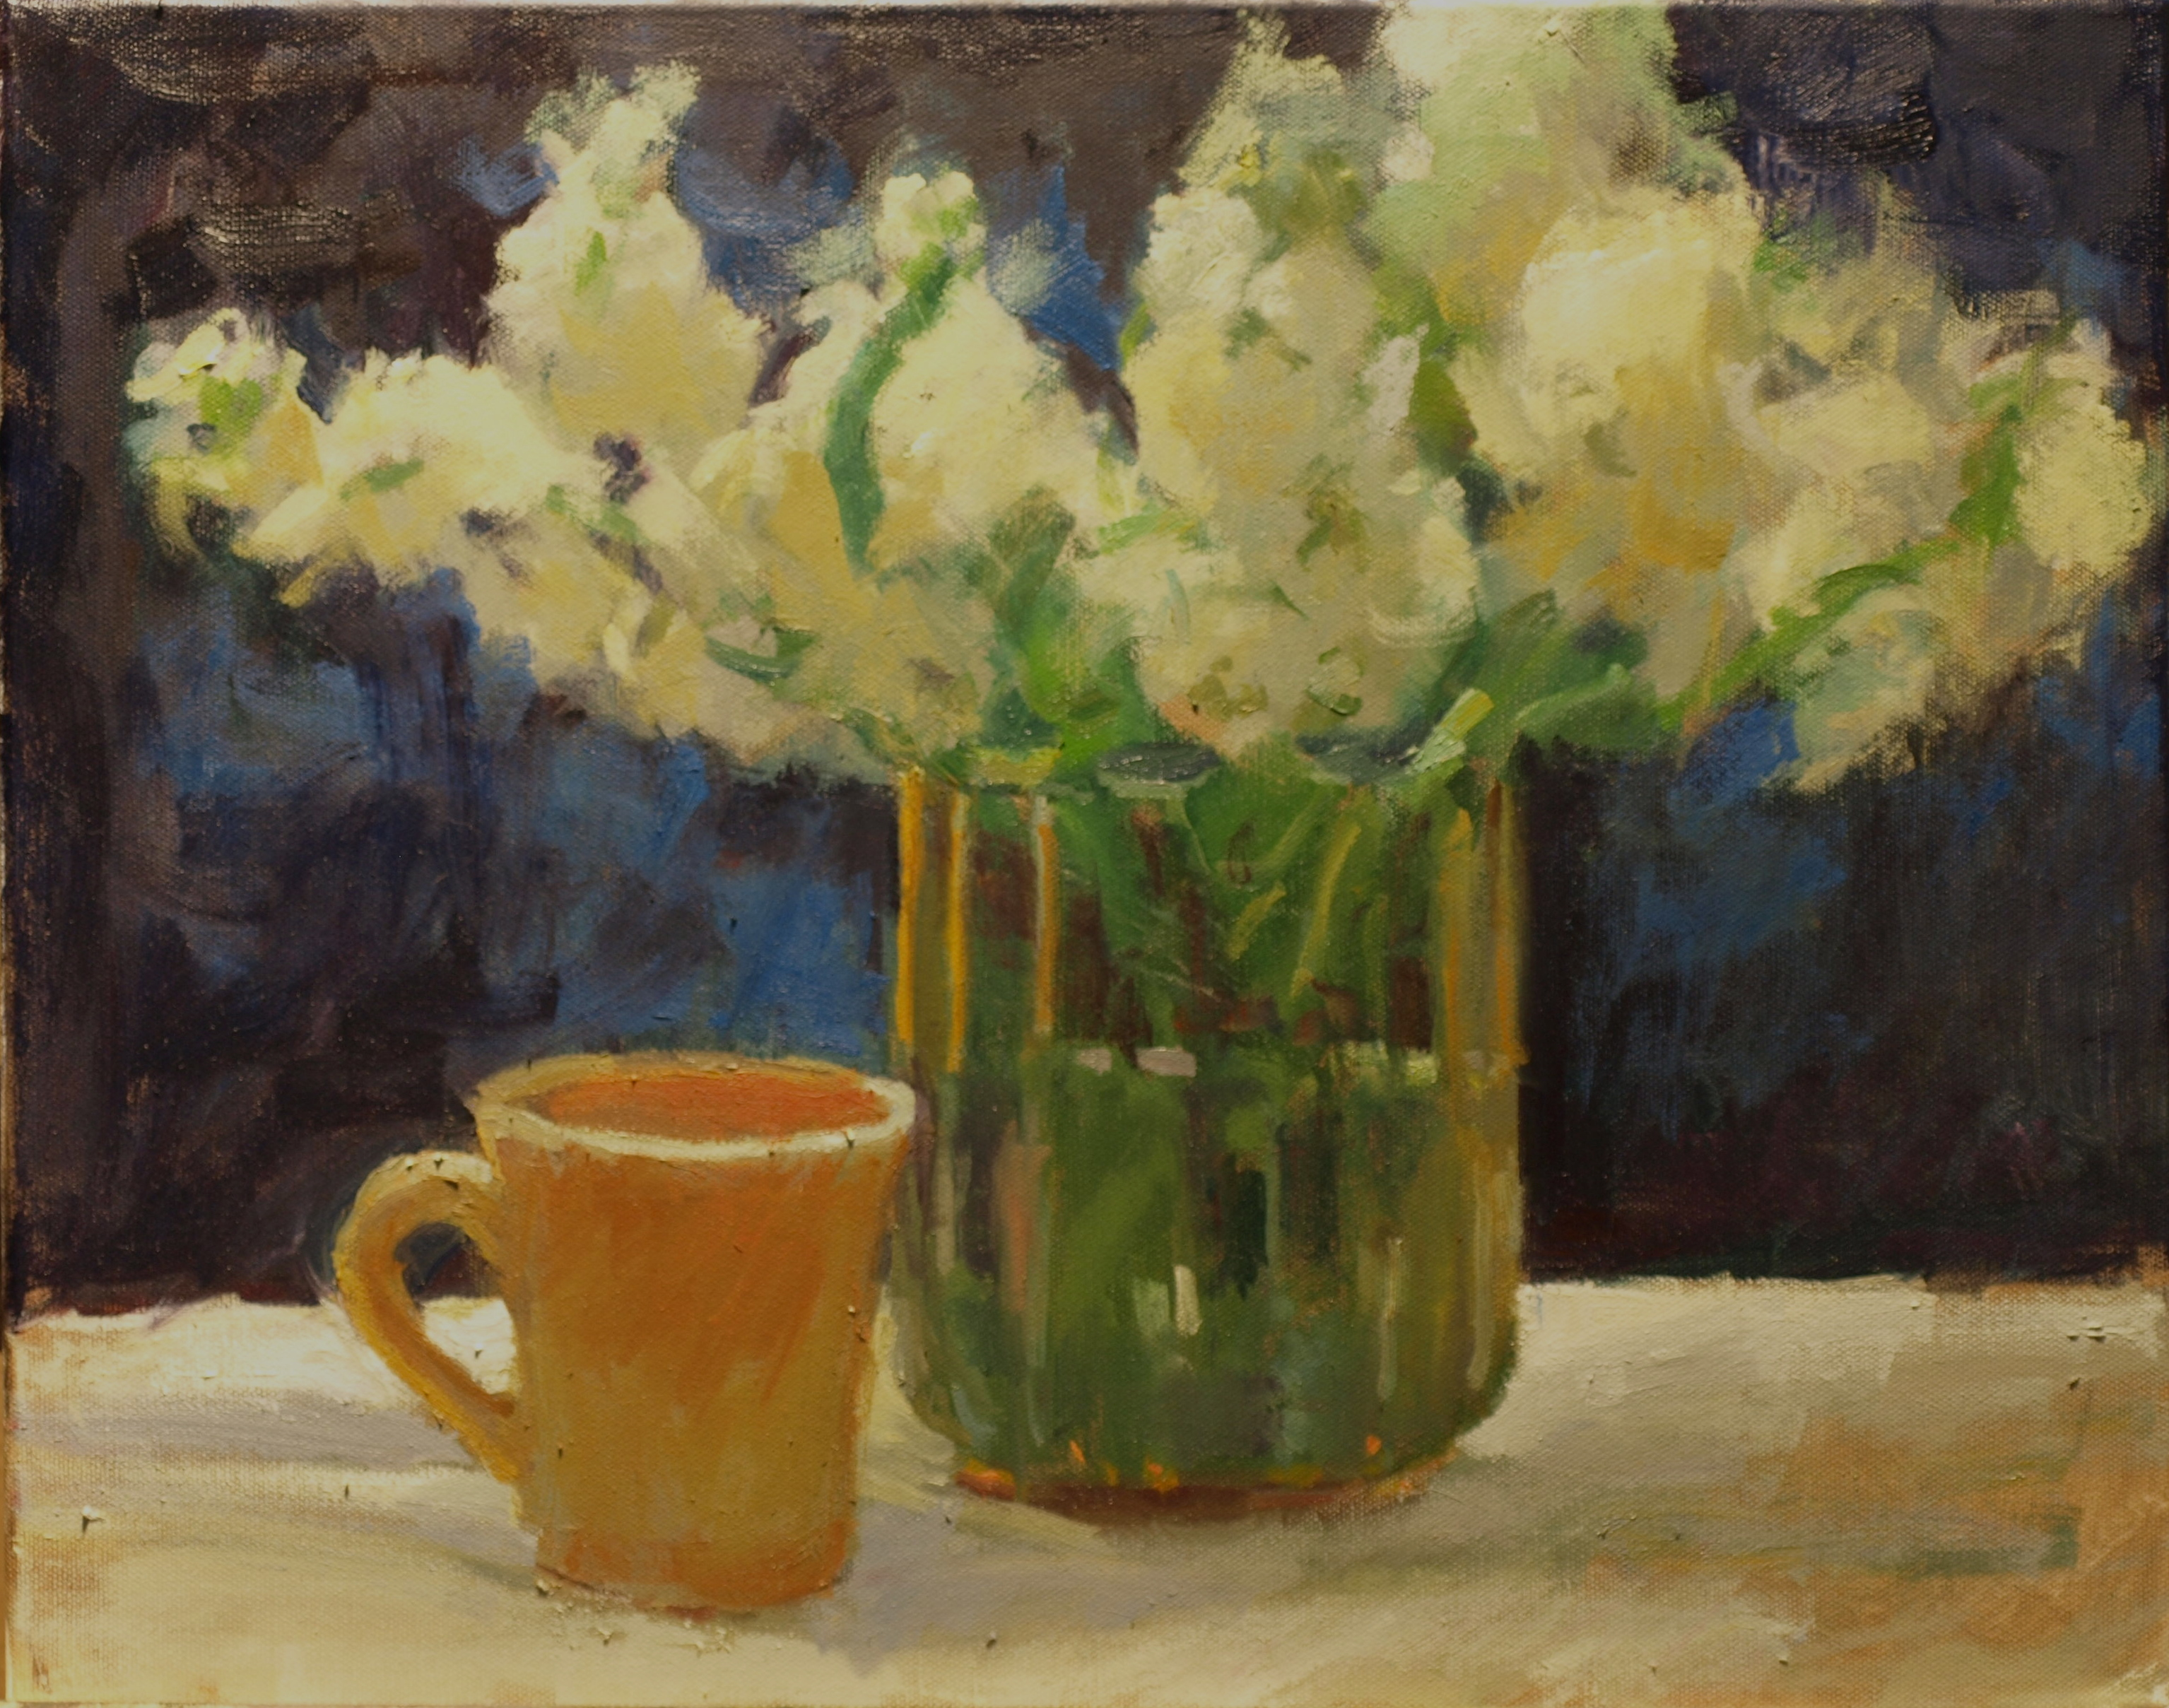 Flowers with Yellow Mug, Oil on Canvas, 16 x 20 Inches, by Susan Grisell, $500